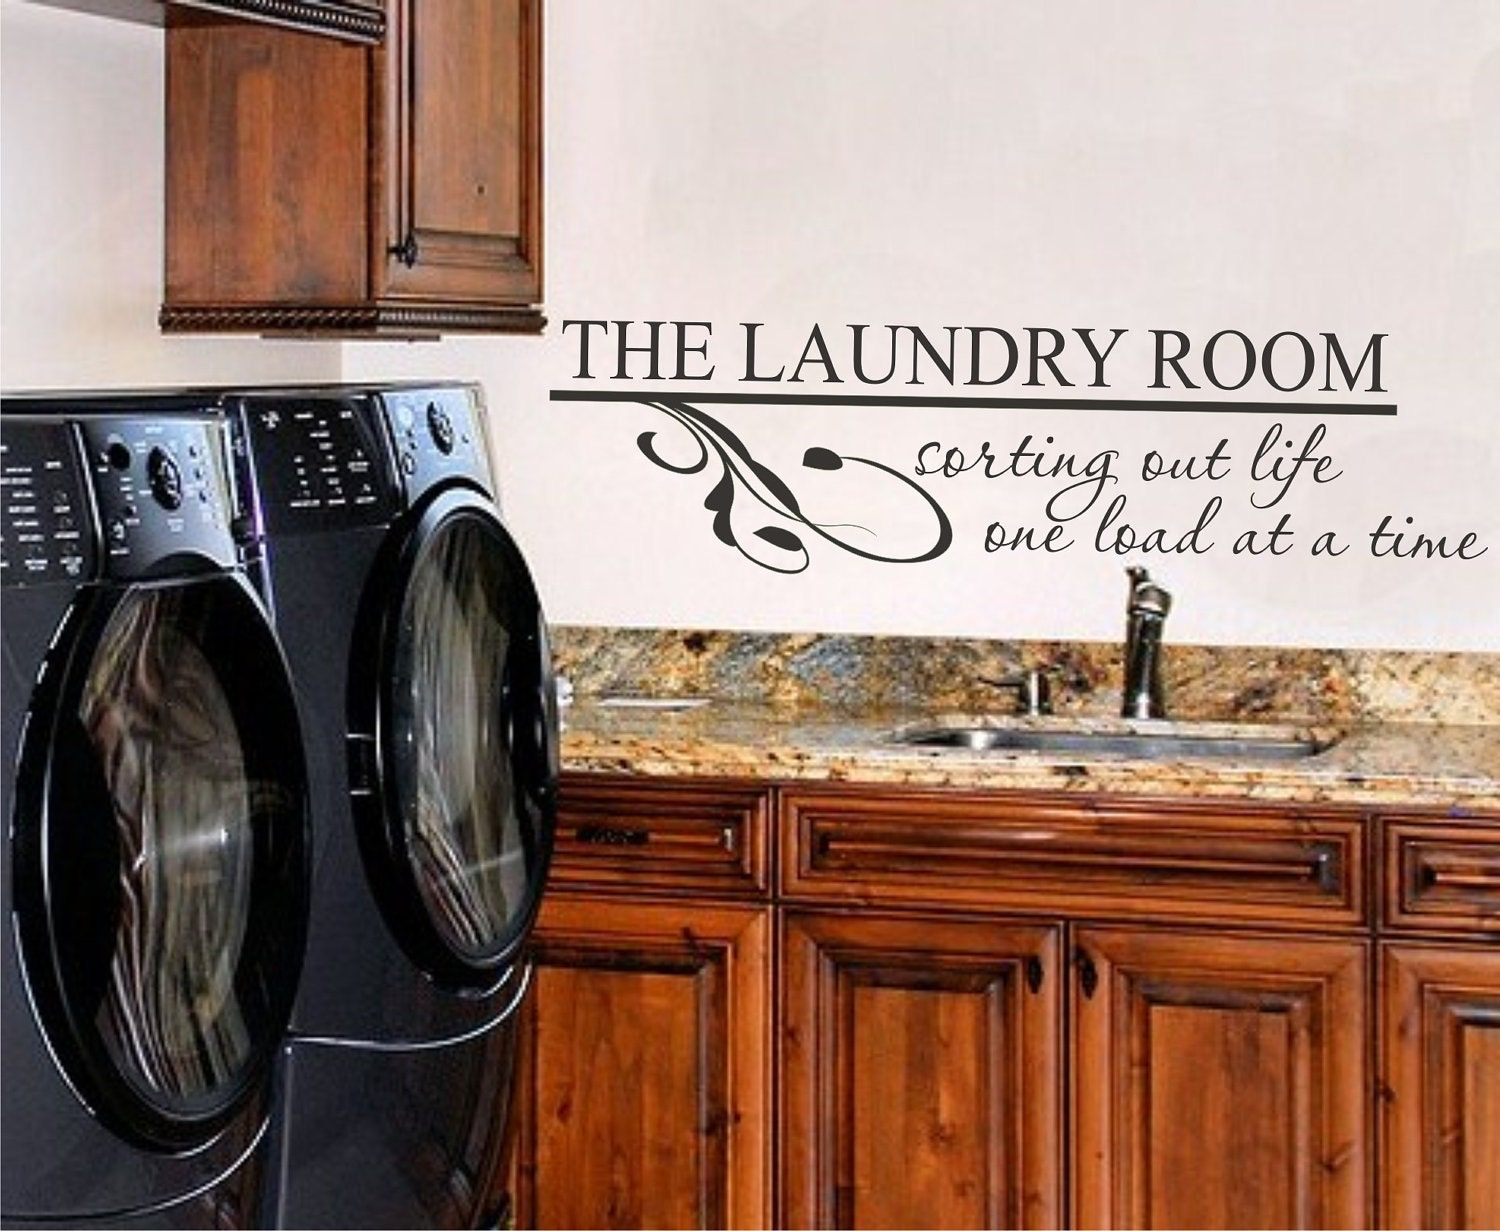 Laundry Room Vinyl Wall Art Laundry Room Vinyl Wall Art Vinyl Lettering Vinyl Decal